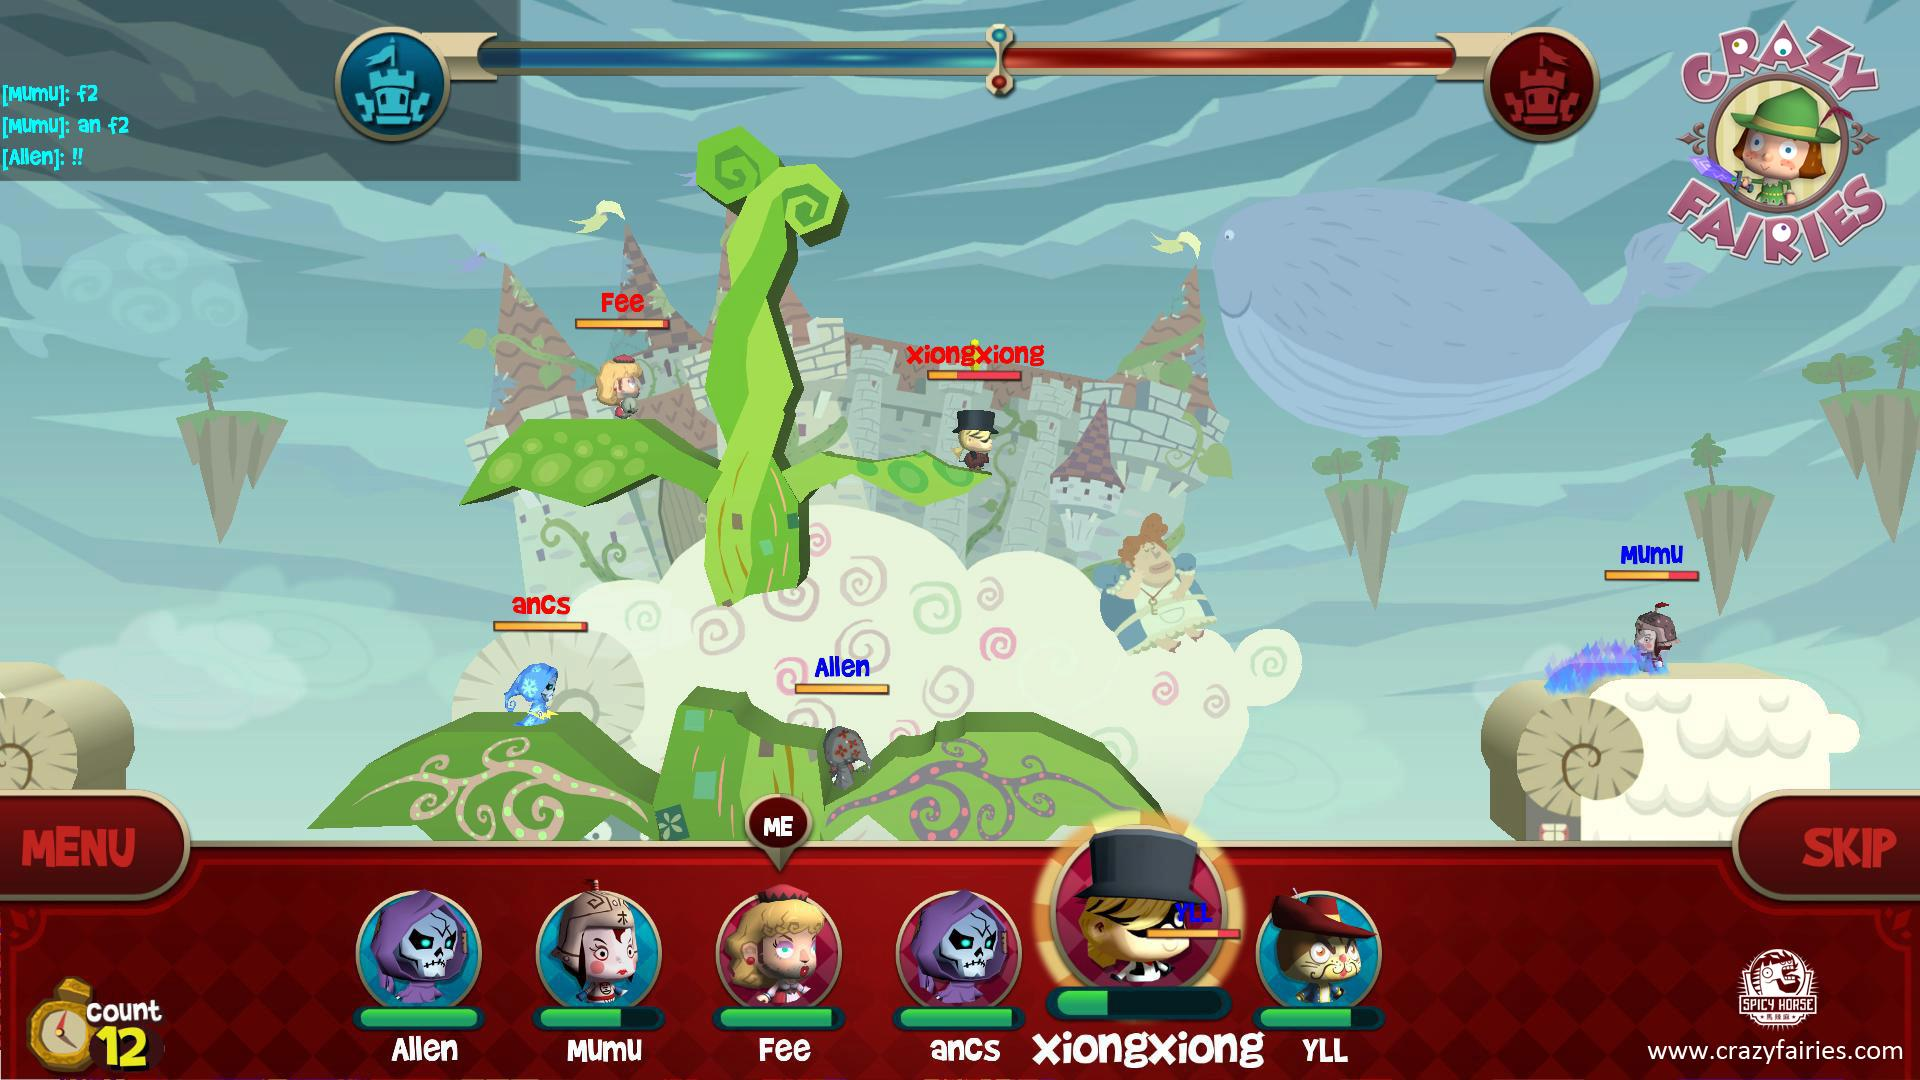 American McGee's Crazy Fairies brings turn-based action to Android